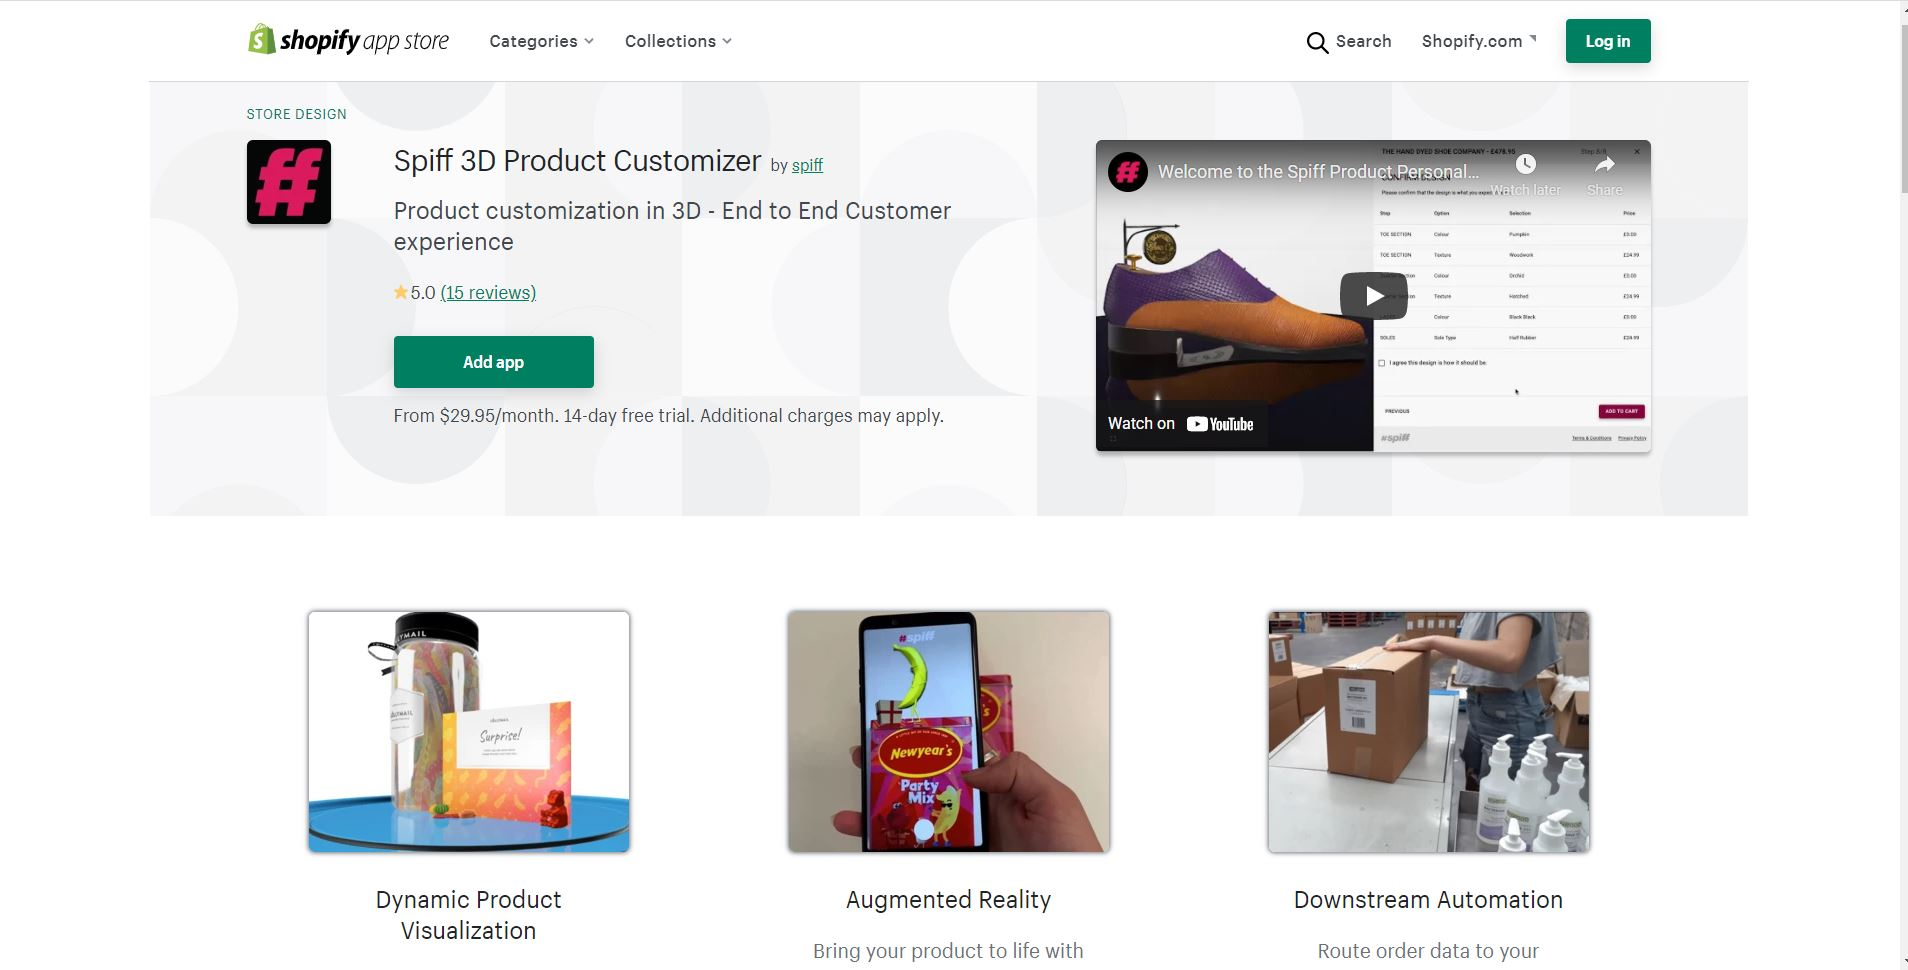 Spiff 3D Product Customizer